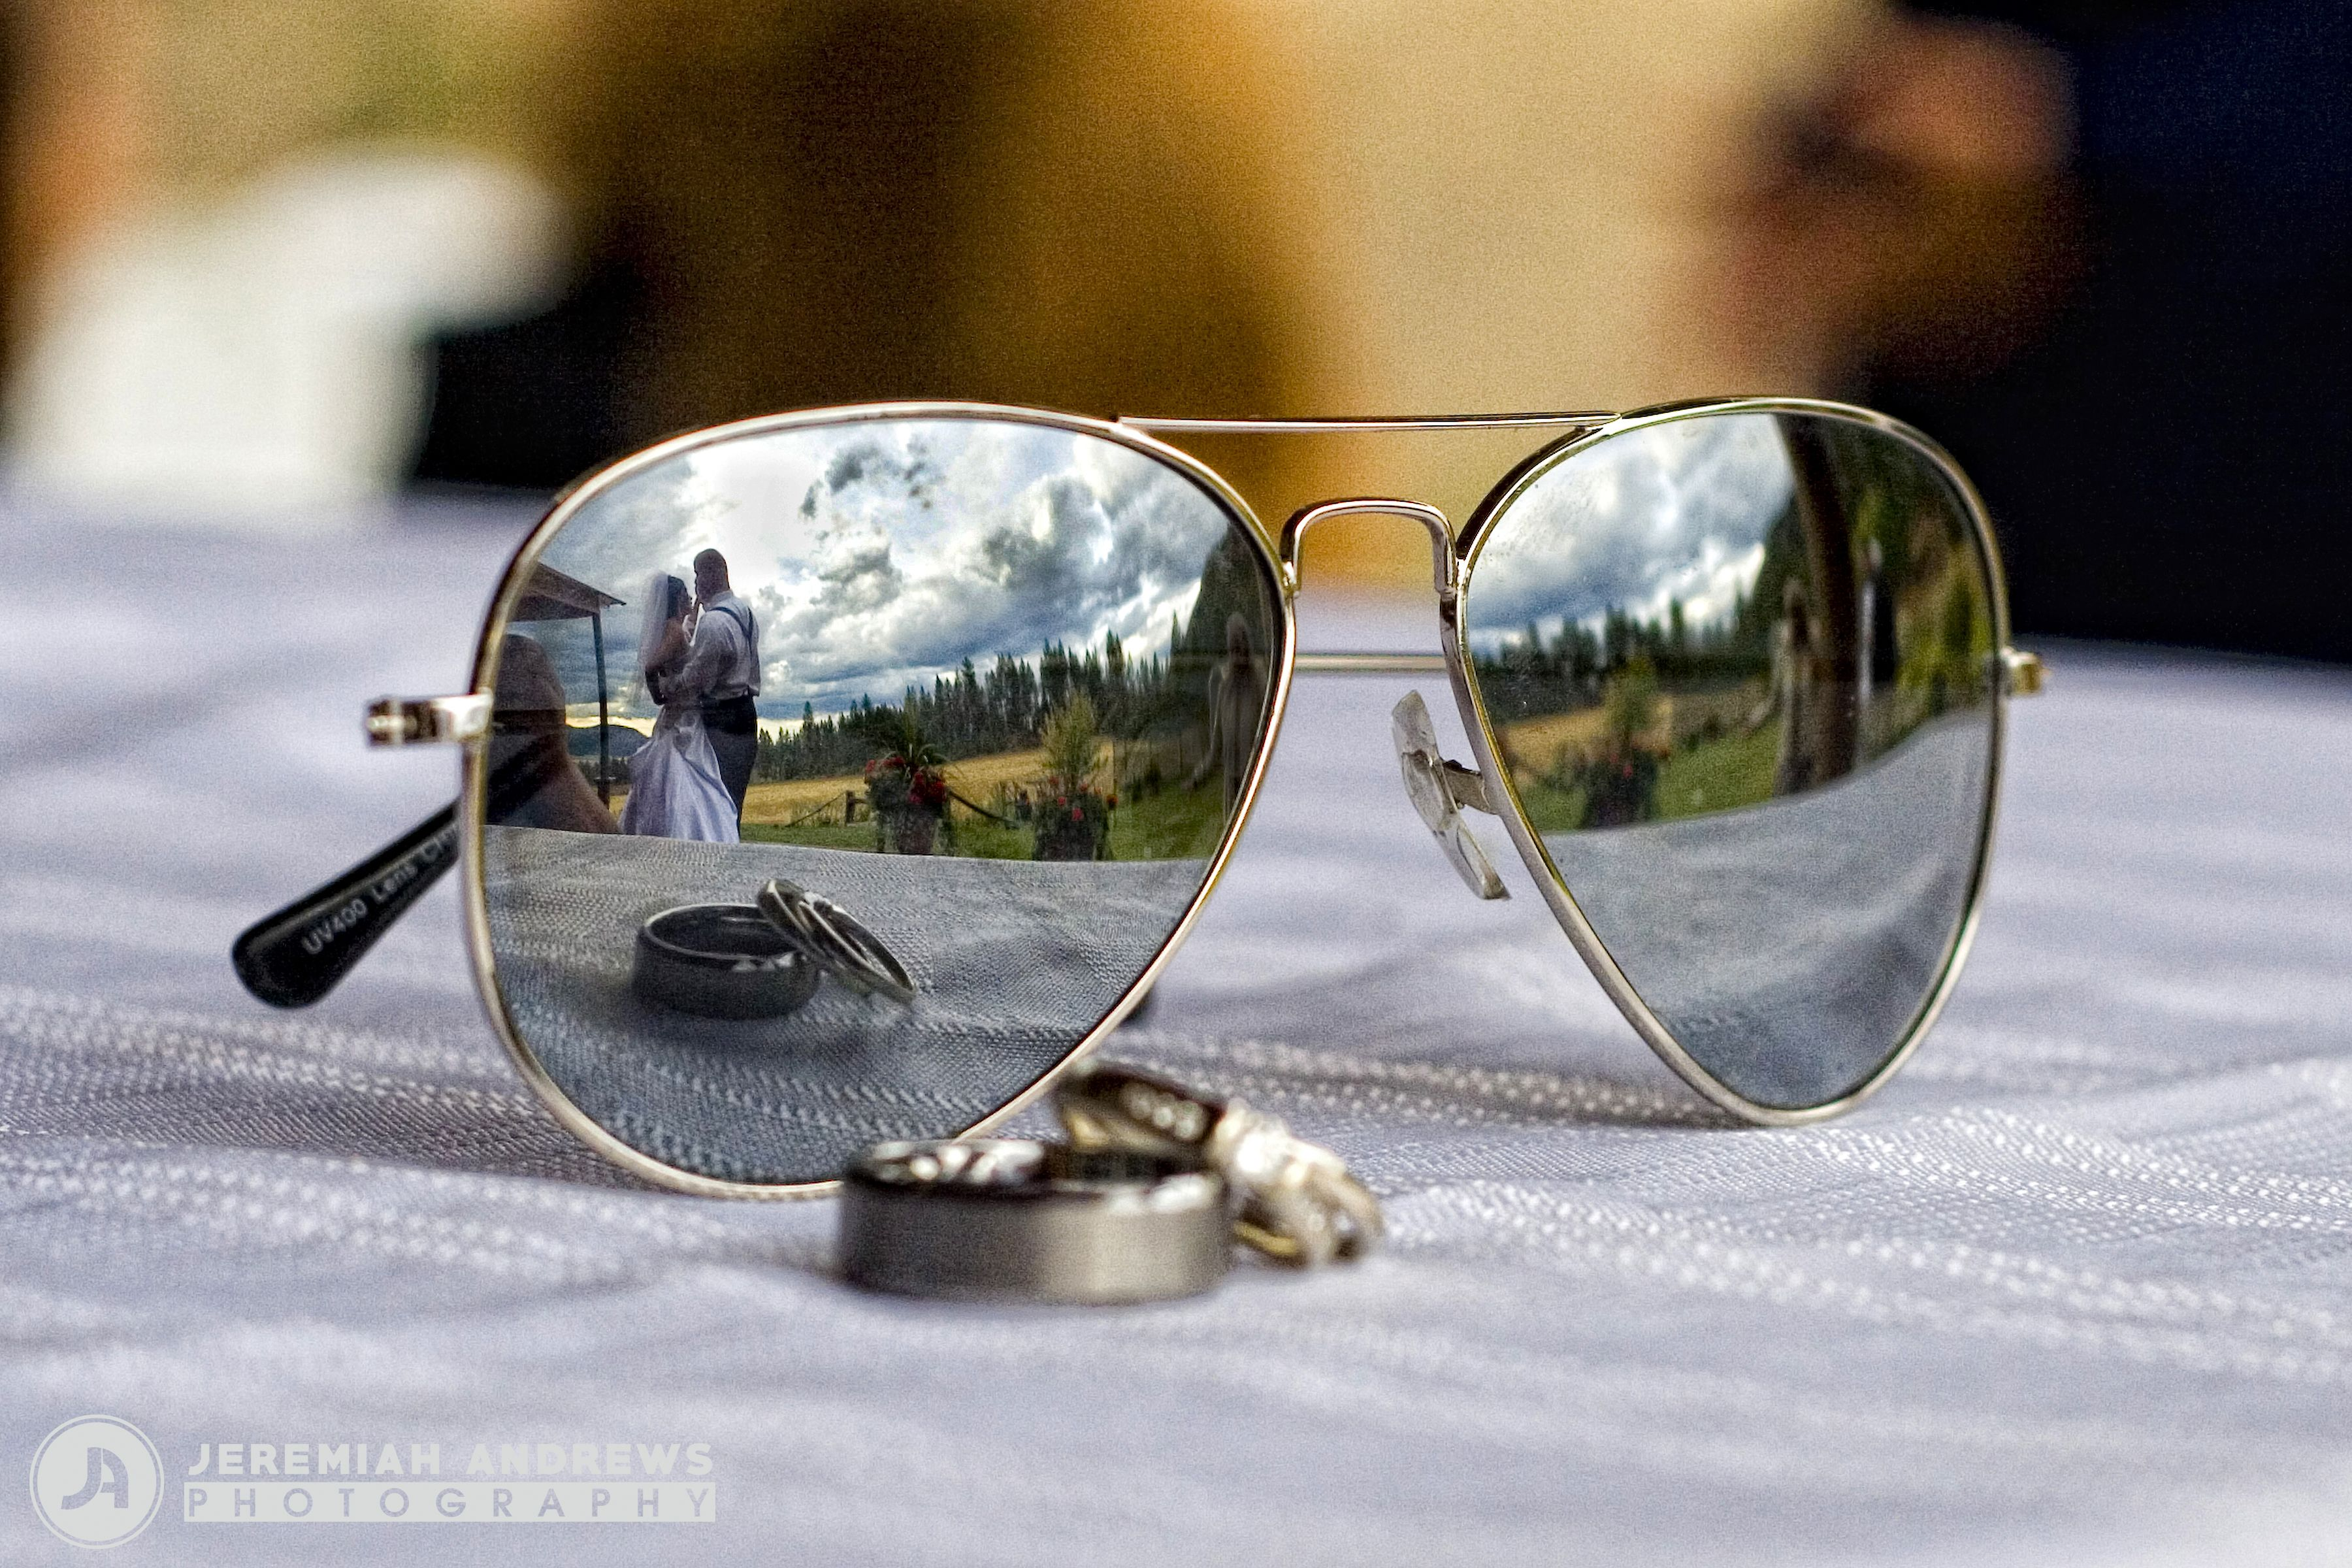 Wedding rings and couple reflected in aviator sunglasses